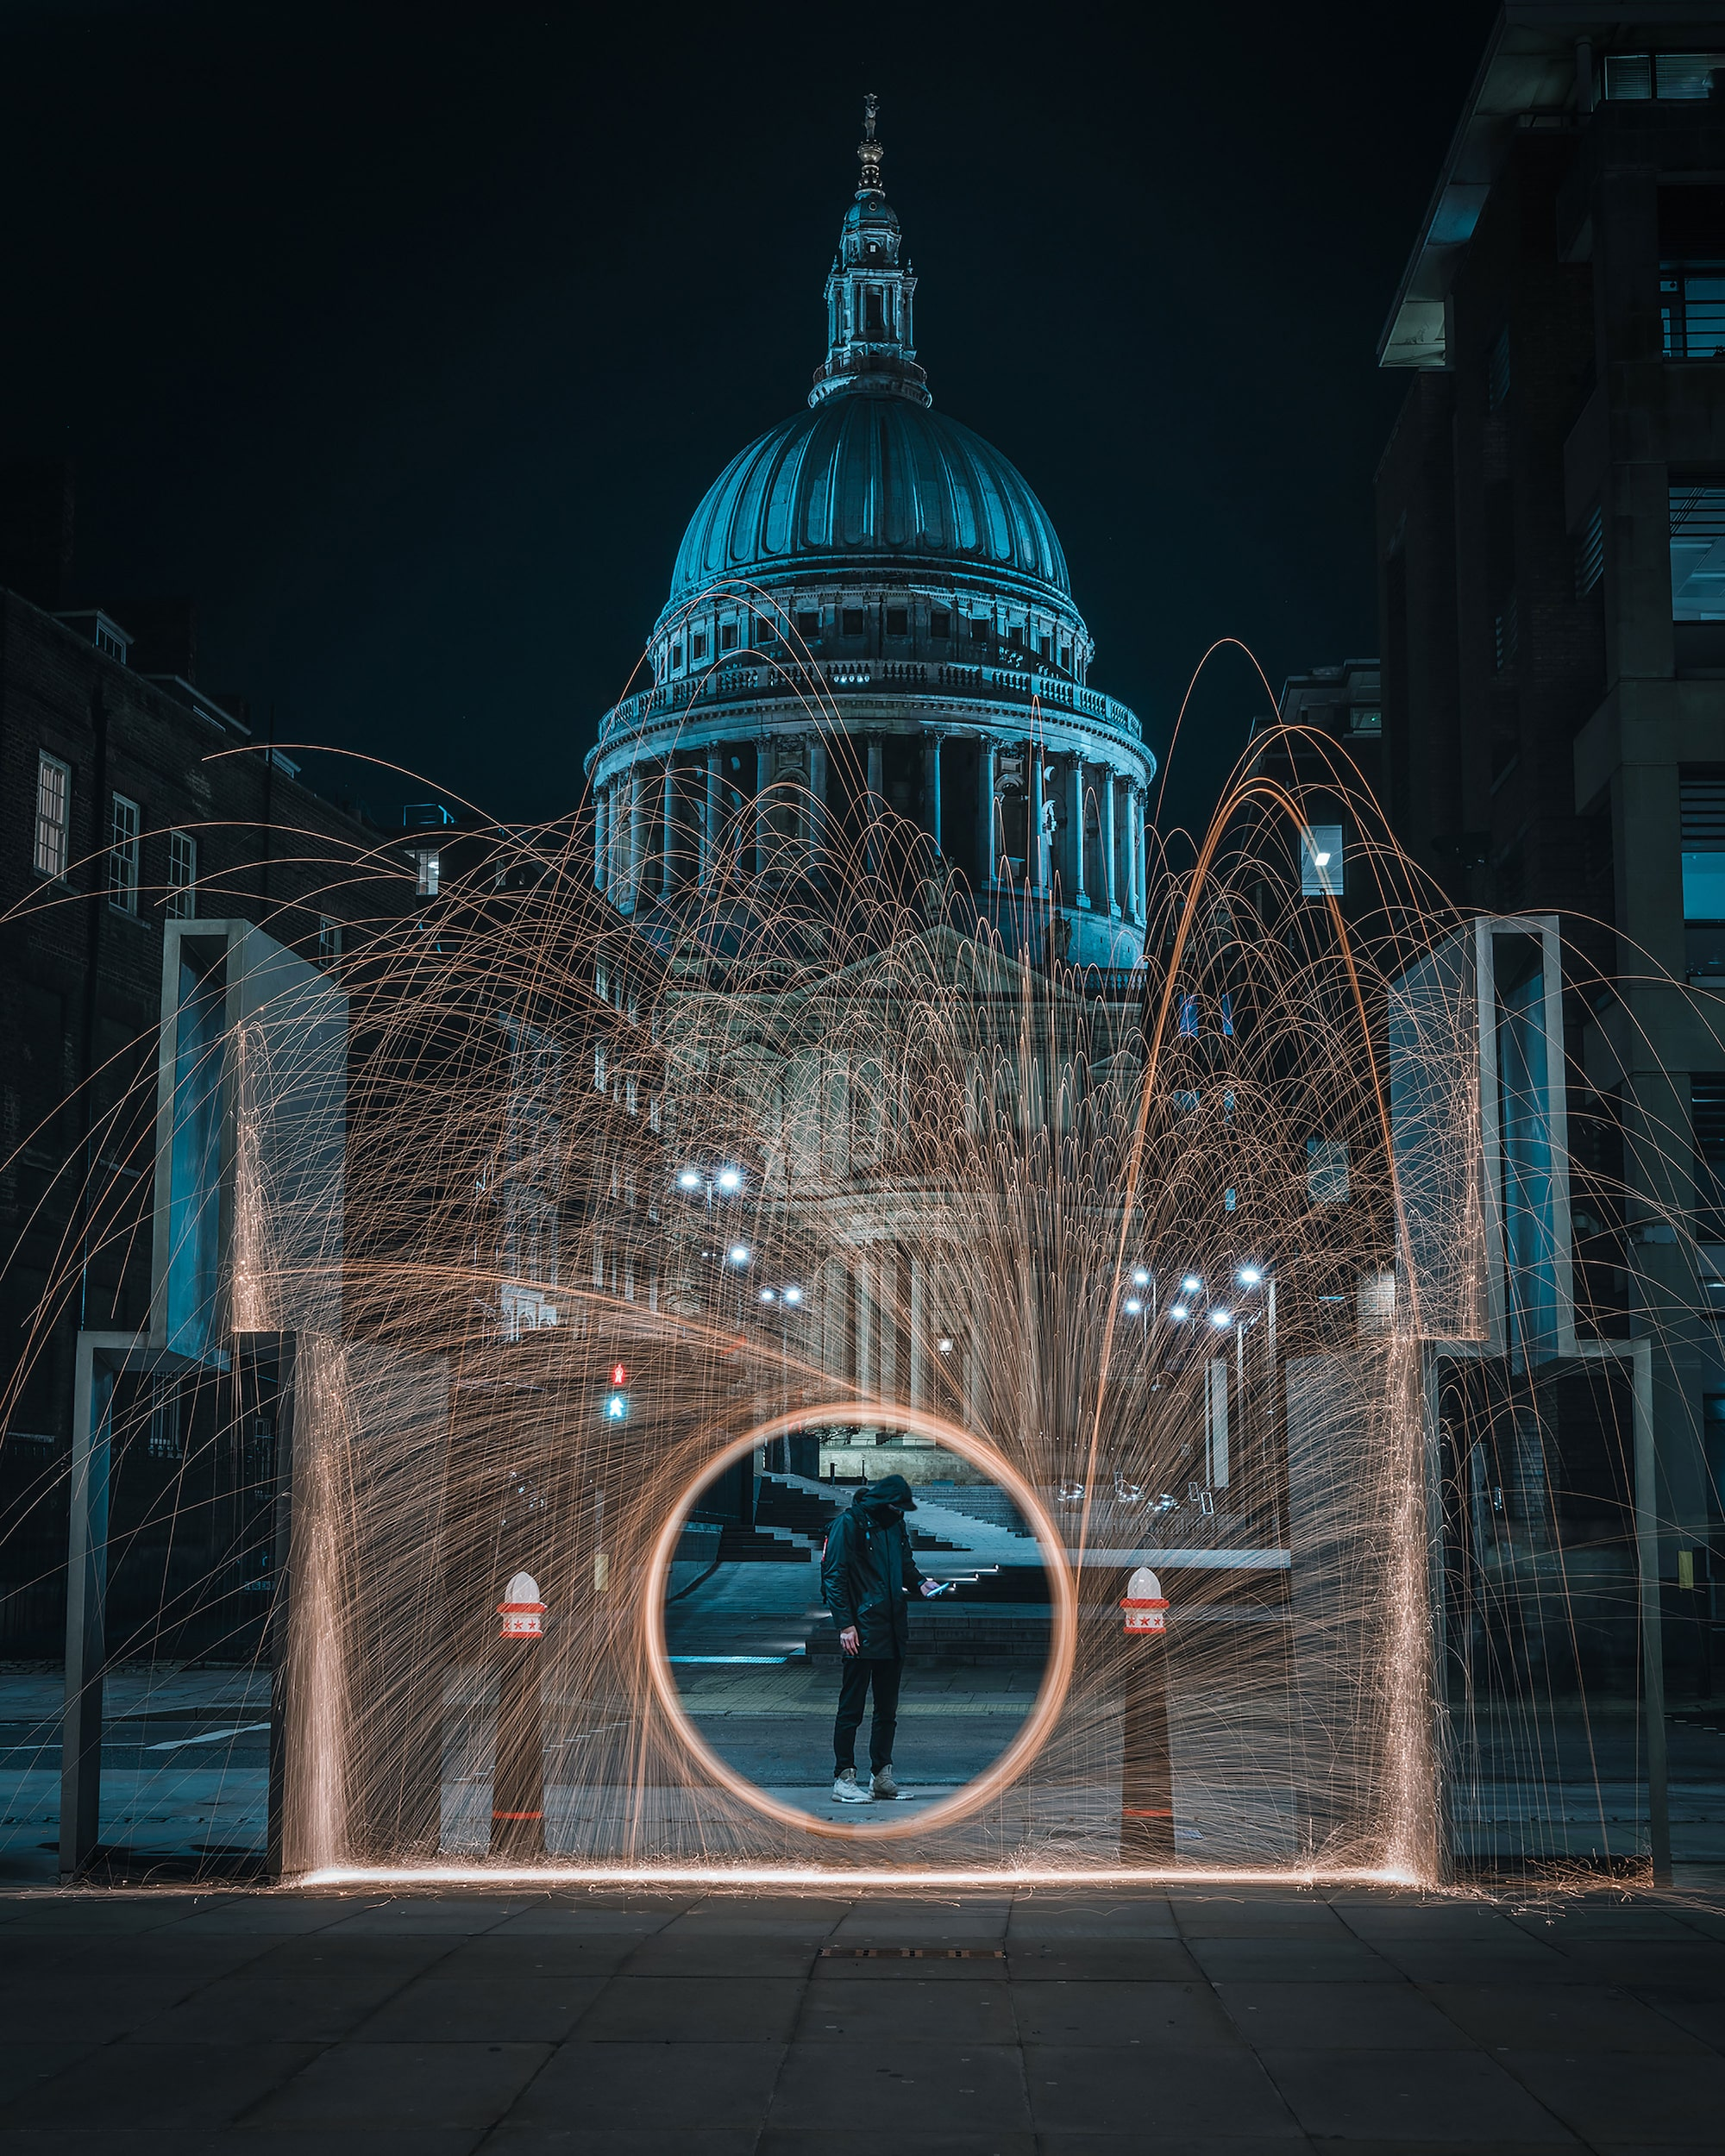 mike will sony alpha 7RIII man stands behind spinning lights in front of st pauls cathedral